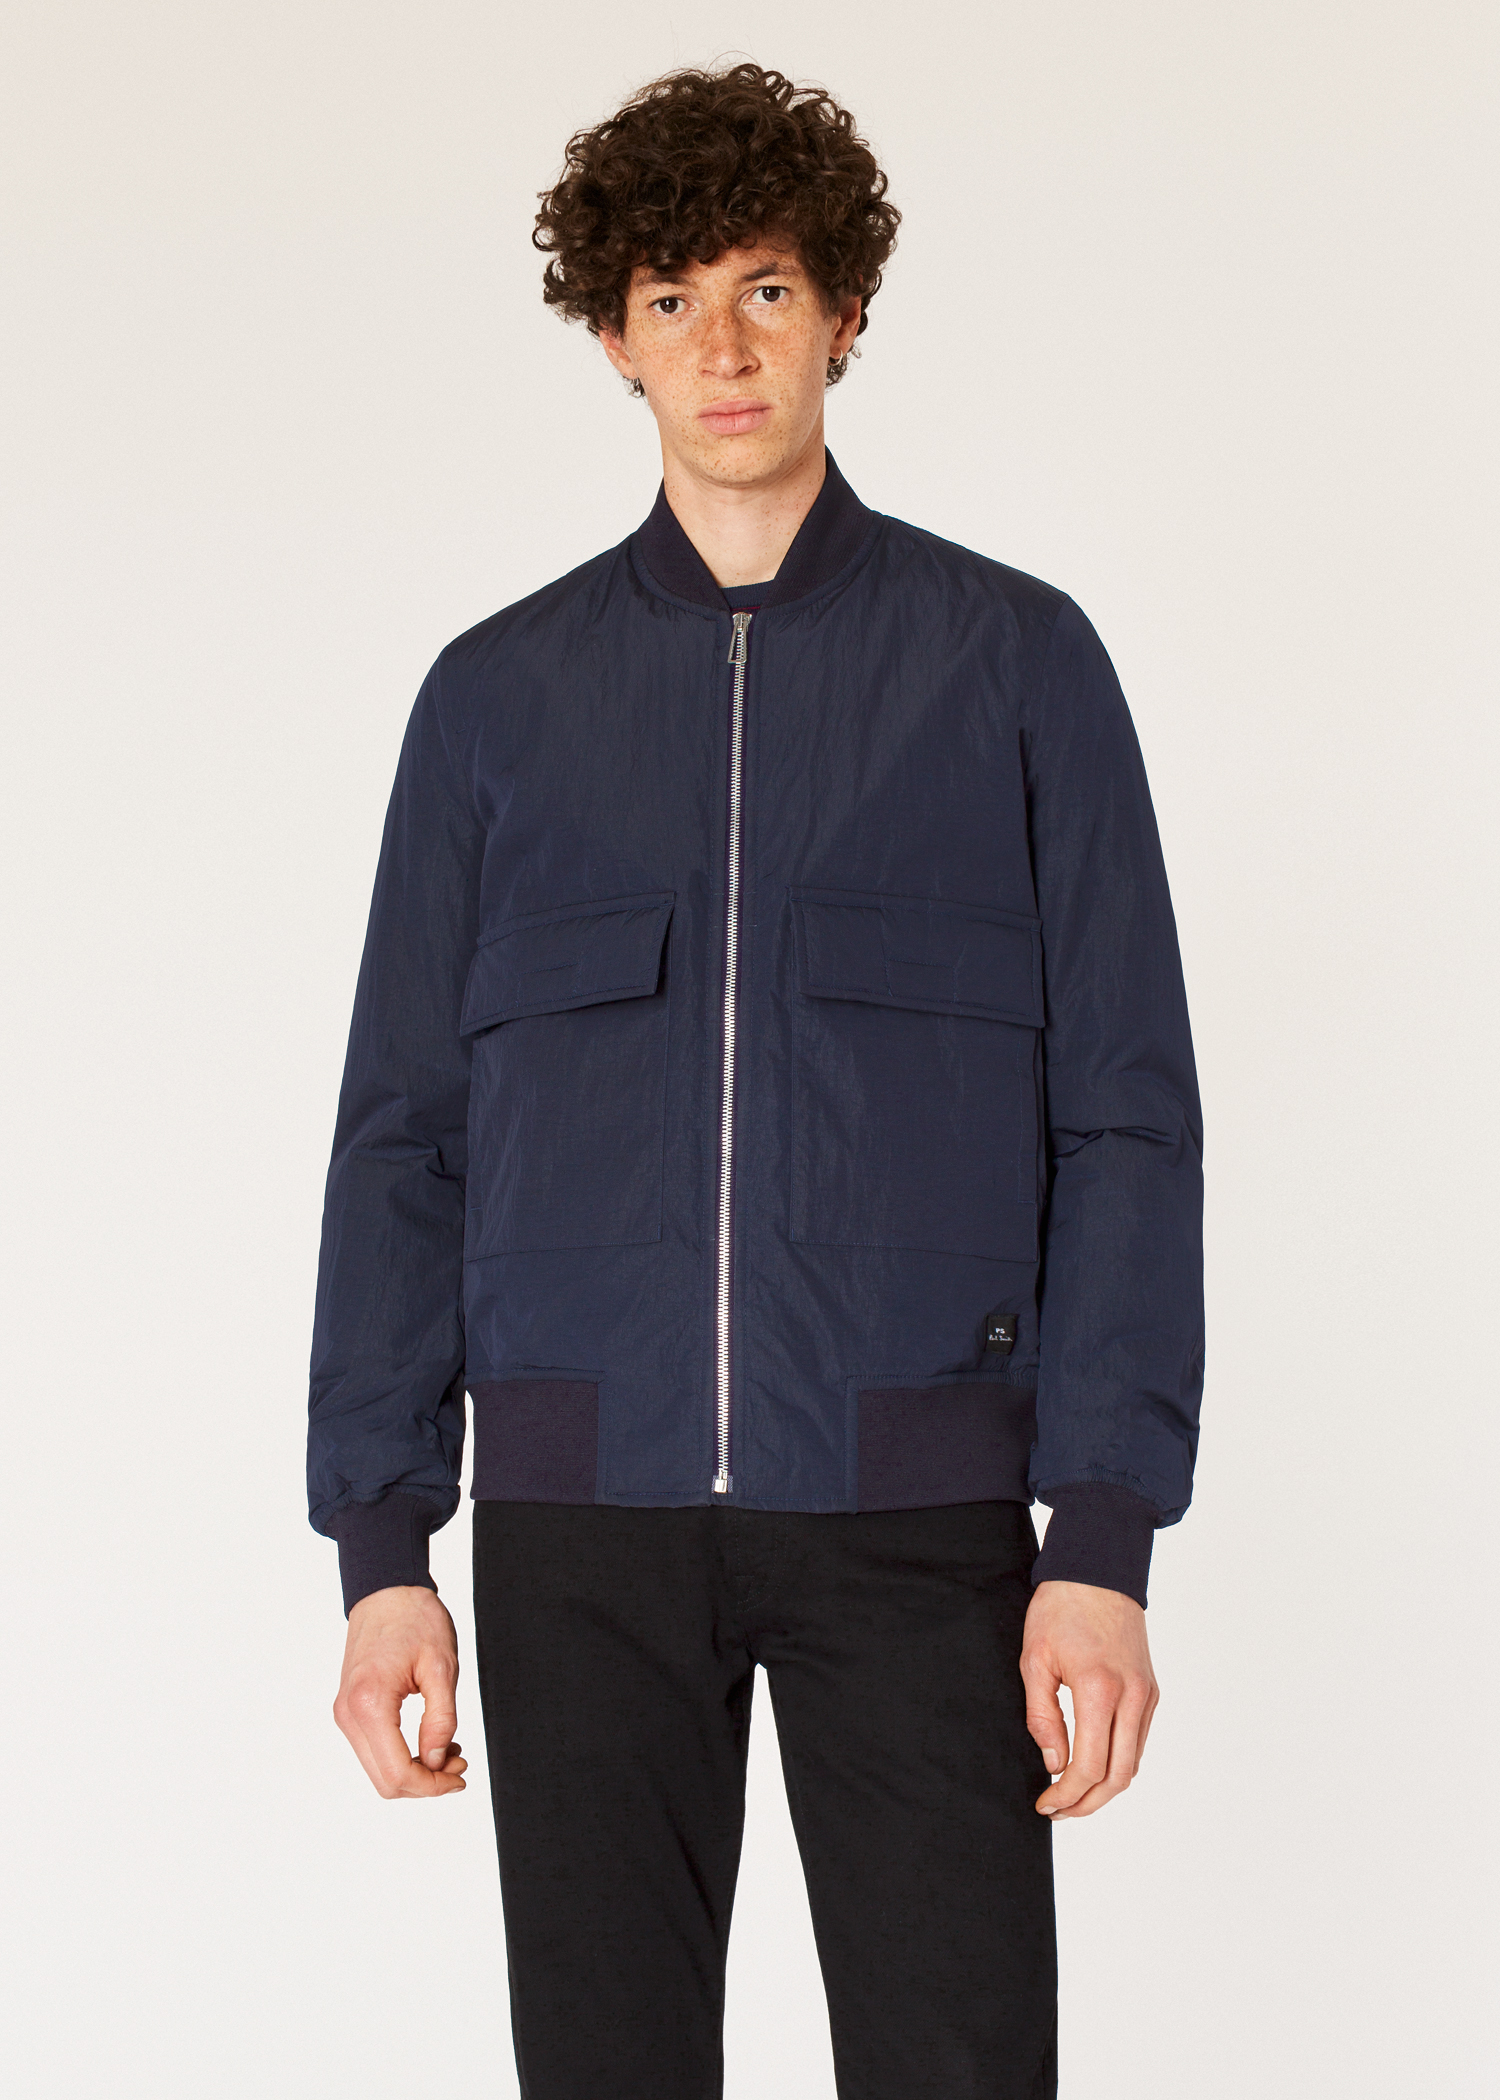 58517fdd8 Men's Navy Nylon Oversized Bomber Jacket